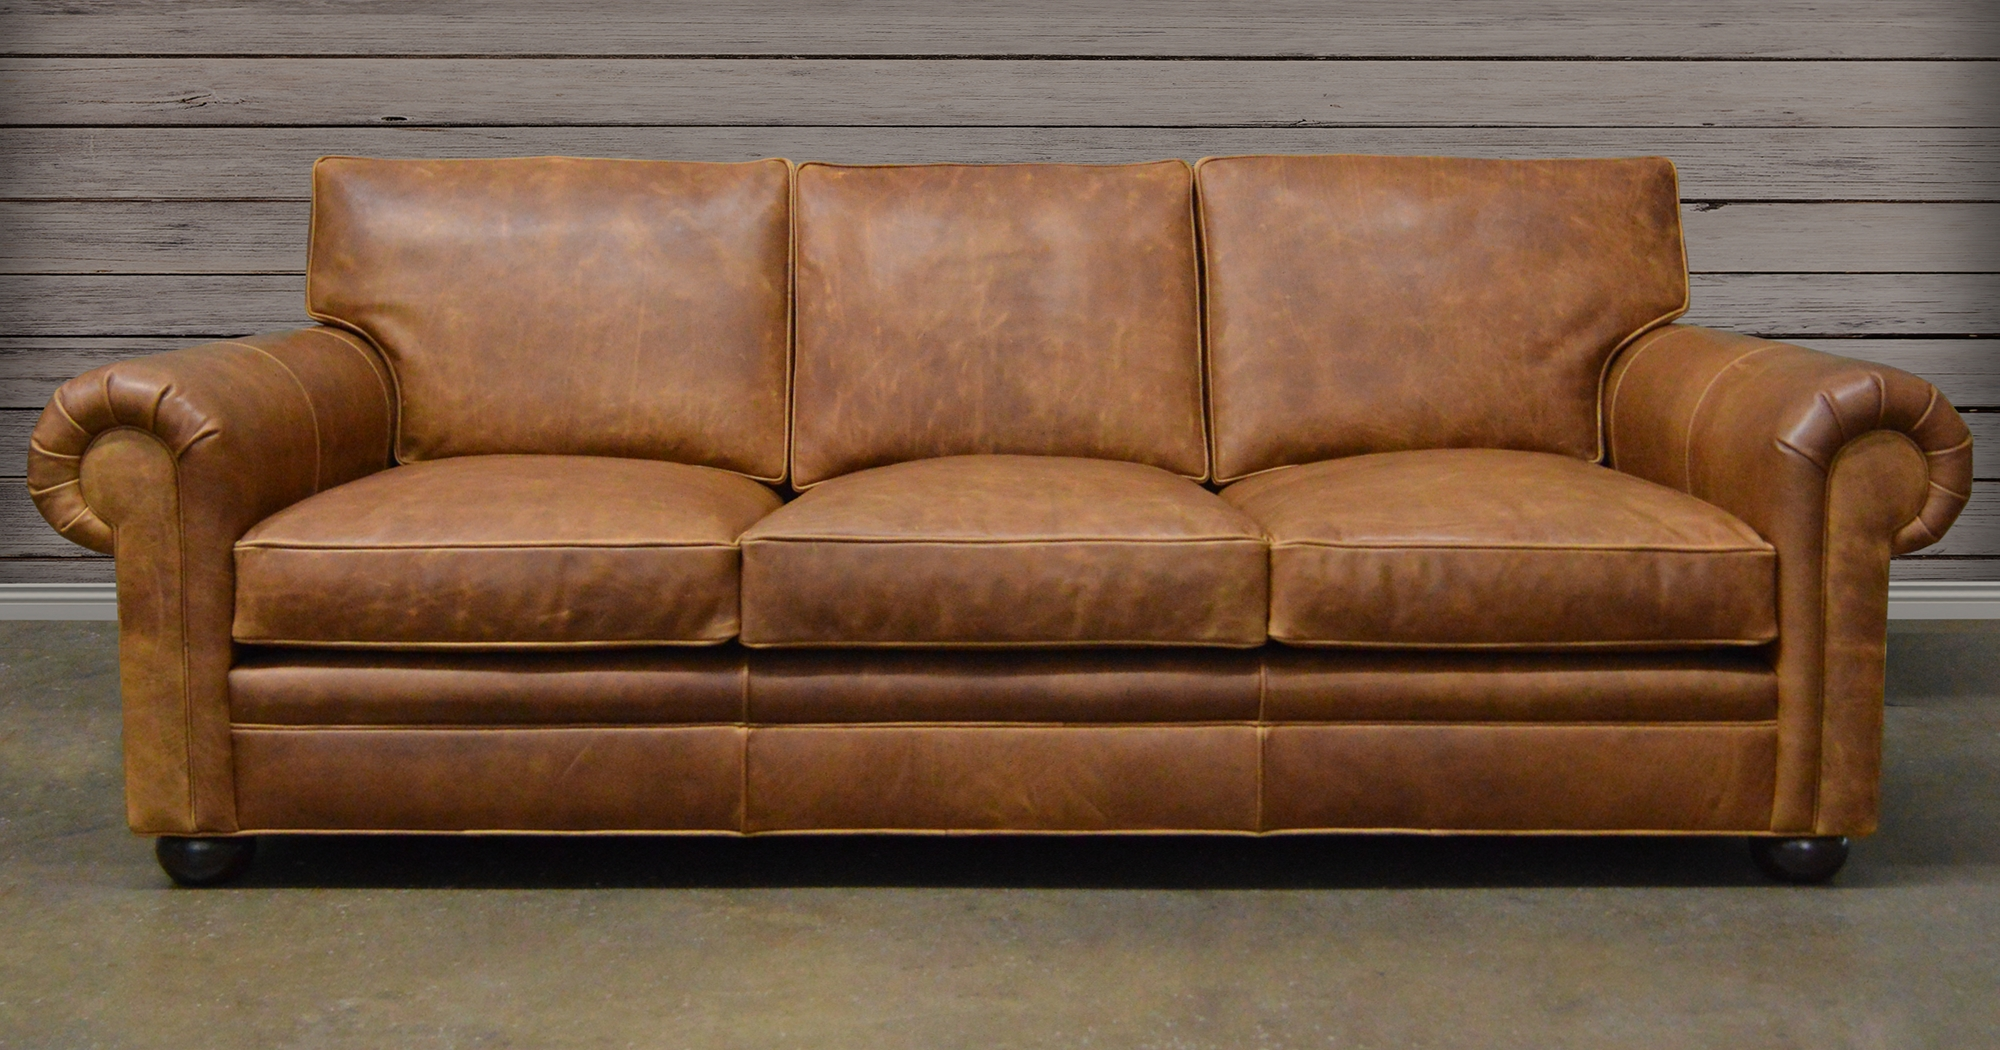 [%Sofa: Concepts Light Brown Leather Sofa 100% Leather Sofas, Ashley Throughout Well Known Light Tan Leather Sofas|Light Tan Leather Sofas Throughout 2019 Sofa: Concepts Light Brown Leather Sofa 100% Leather Sofas, Ashley|Trendy Light Tan Leather Sofas Throughout Sofa: Concepts Light Brown Leather Sofa 100% Leather Sofas, Ashley|Most Recently Released Sofa: Concepts Light Brown Leather Sofa 100% Leather Sofas, Ashley Regarding Light Tan Leather Sofas%] (View 4 of 20)